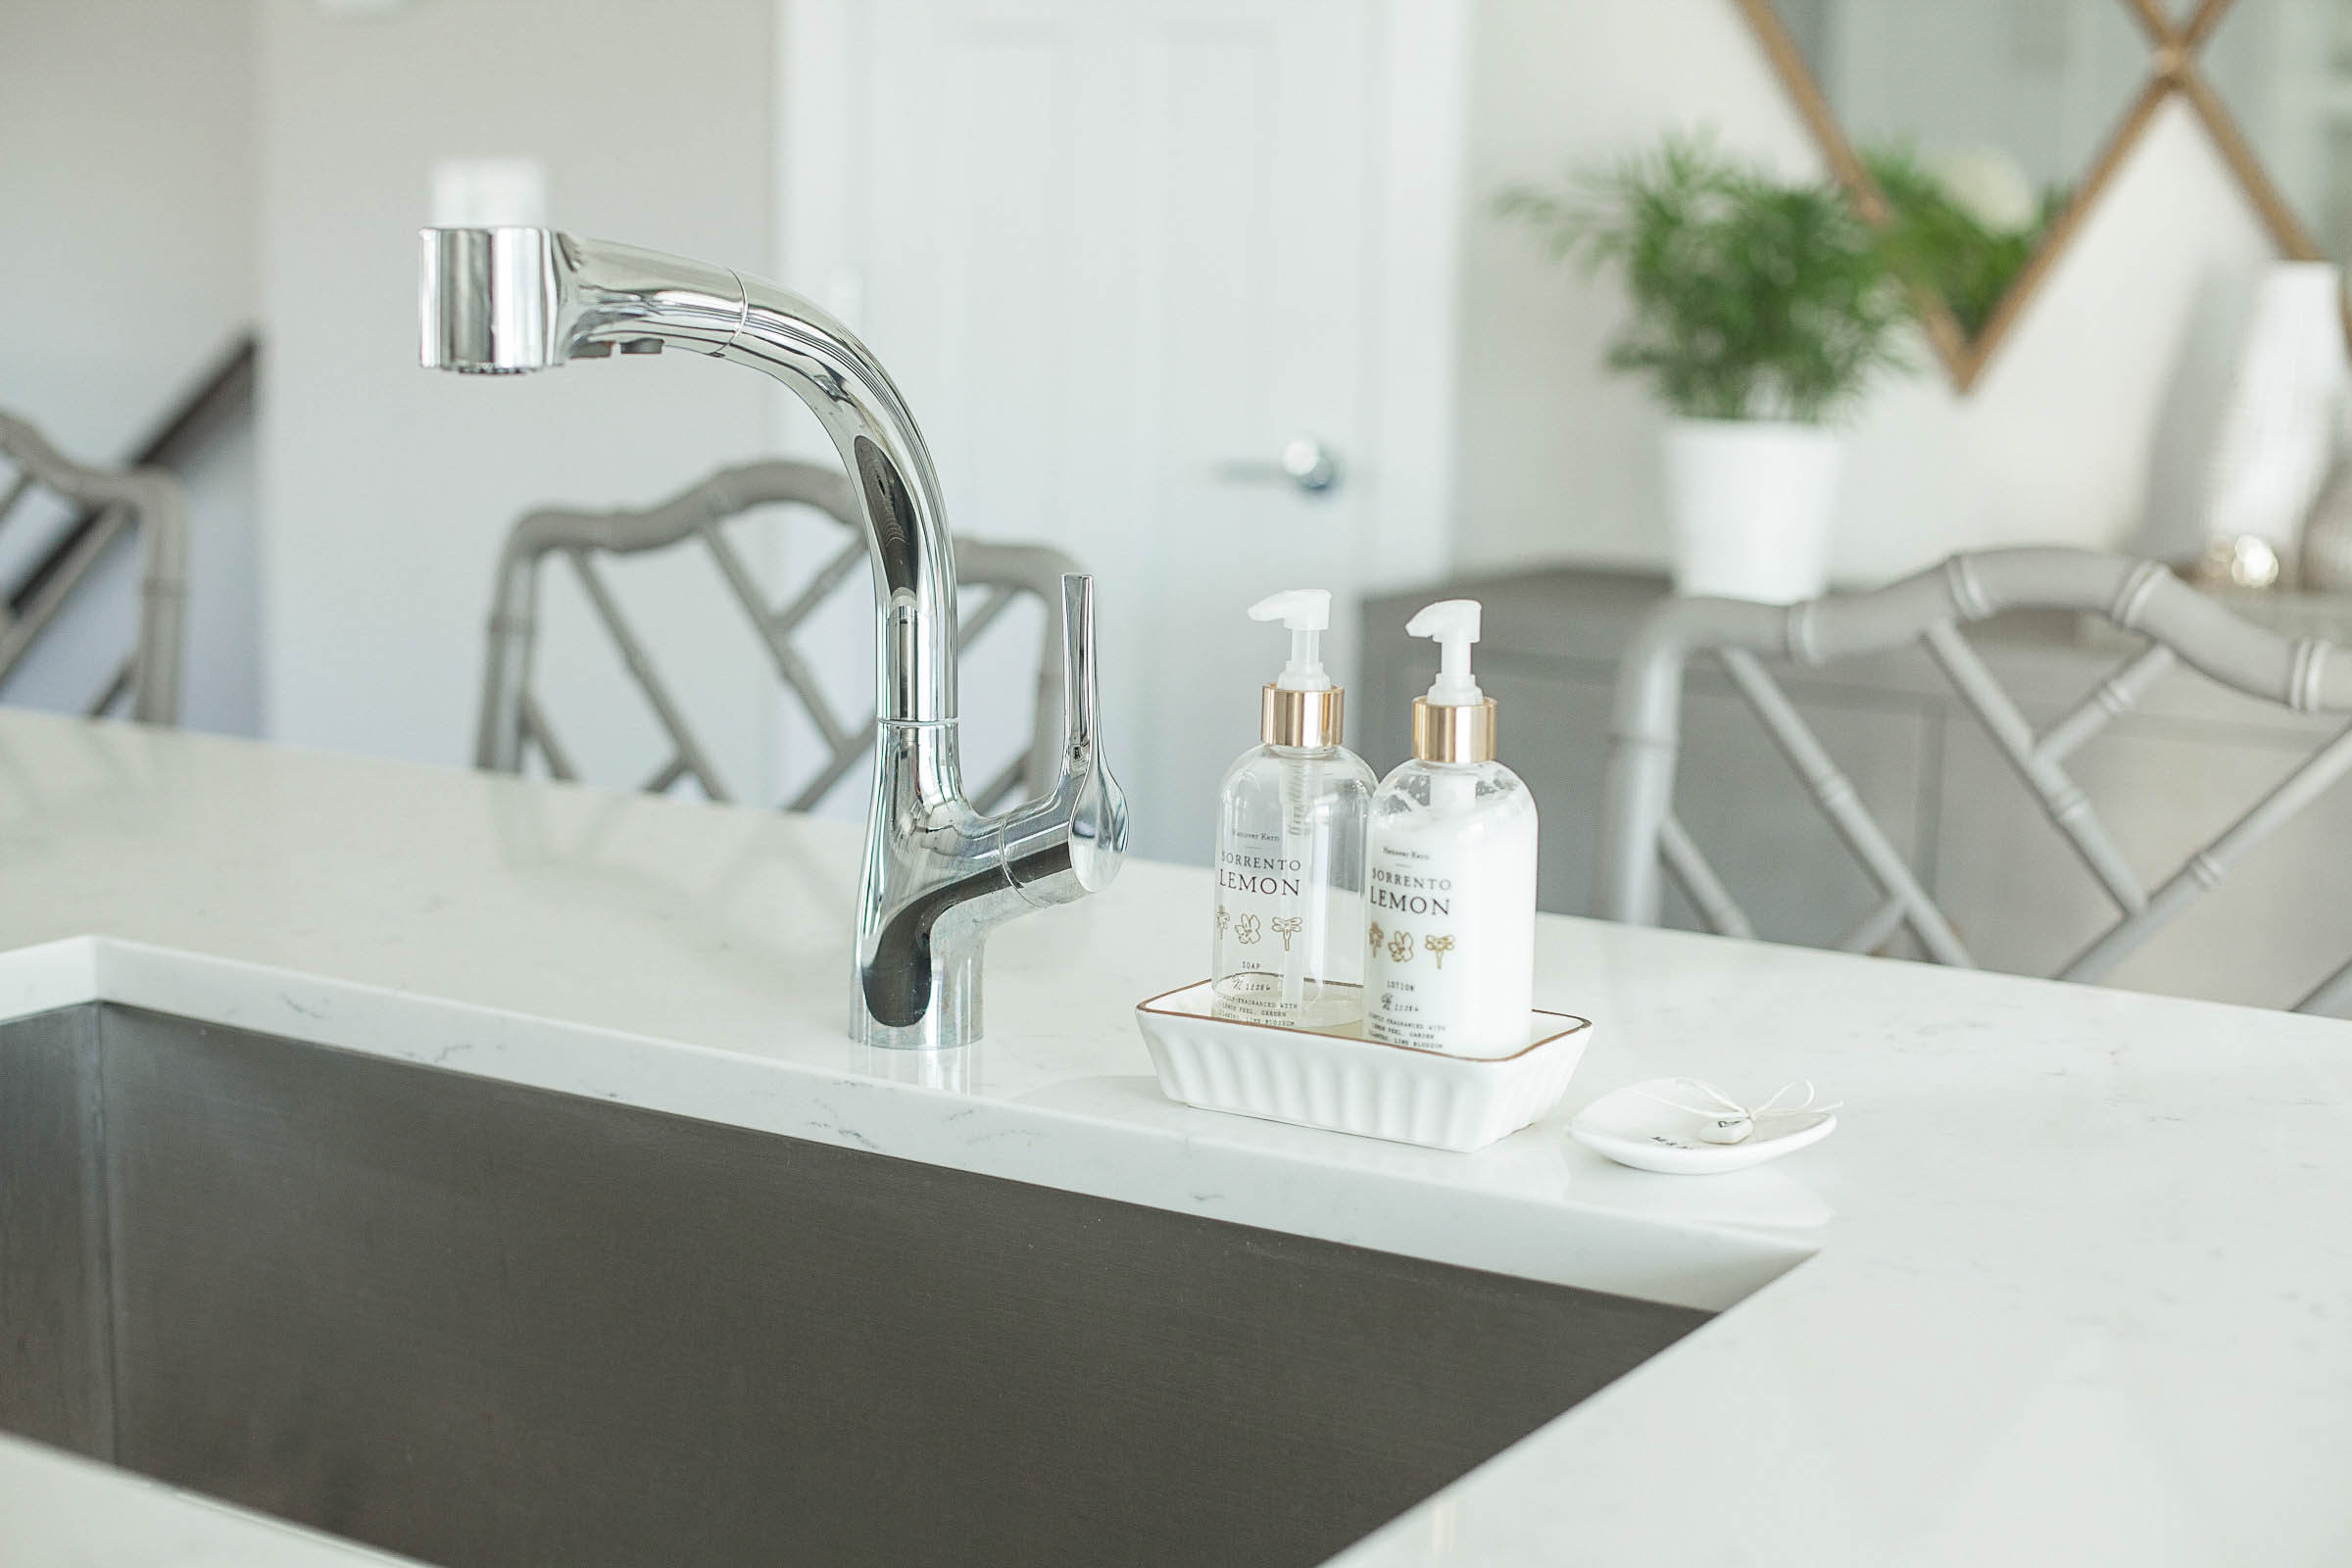 modern kitchen sink, chrome faucet